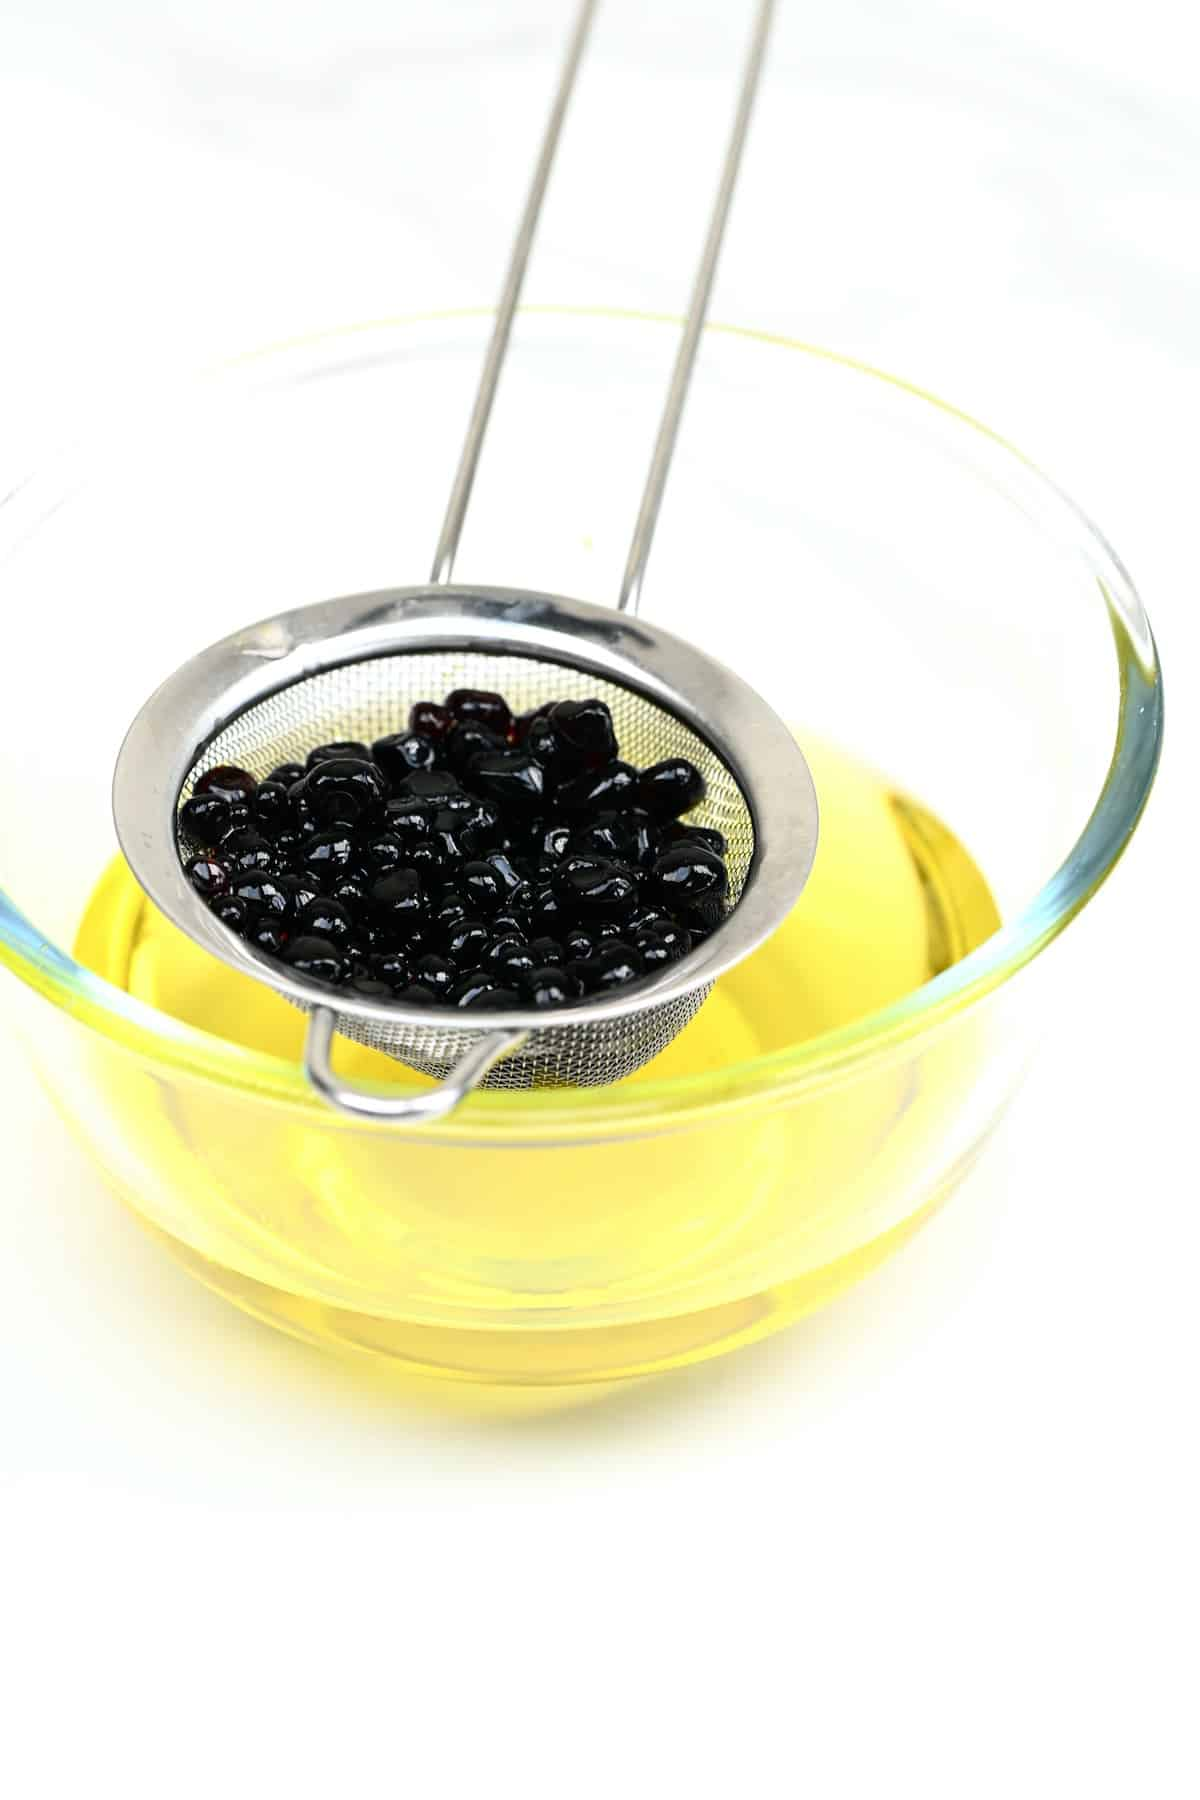 Draining balsamic pearls from the oil